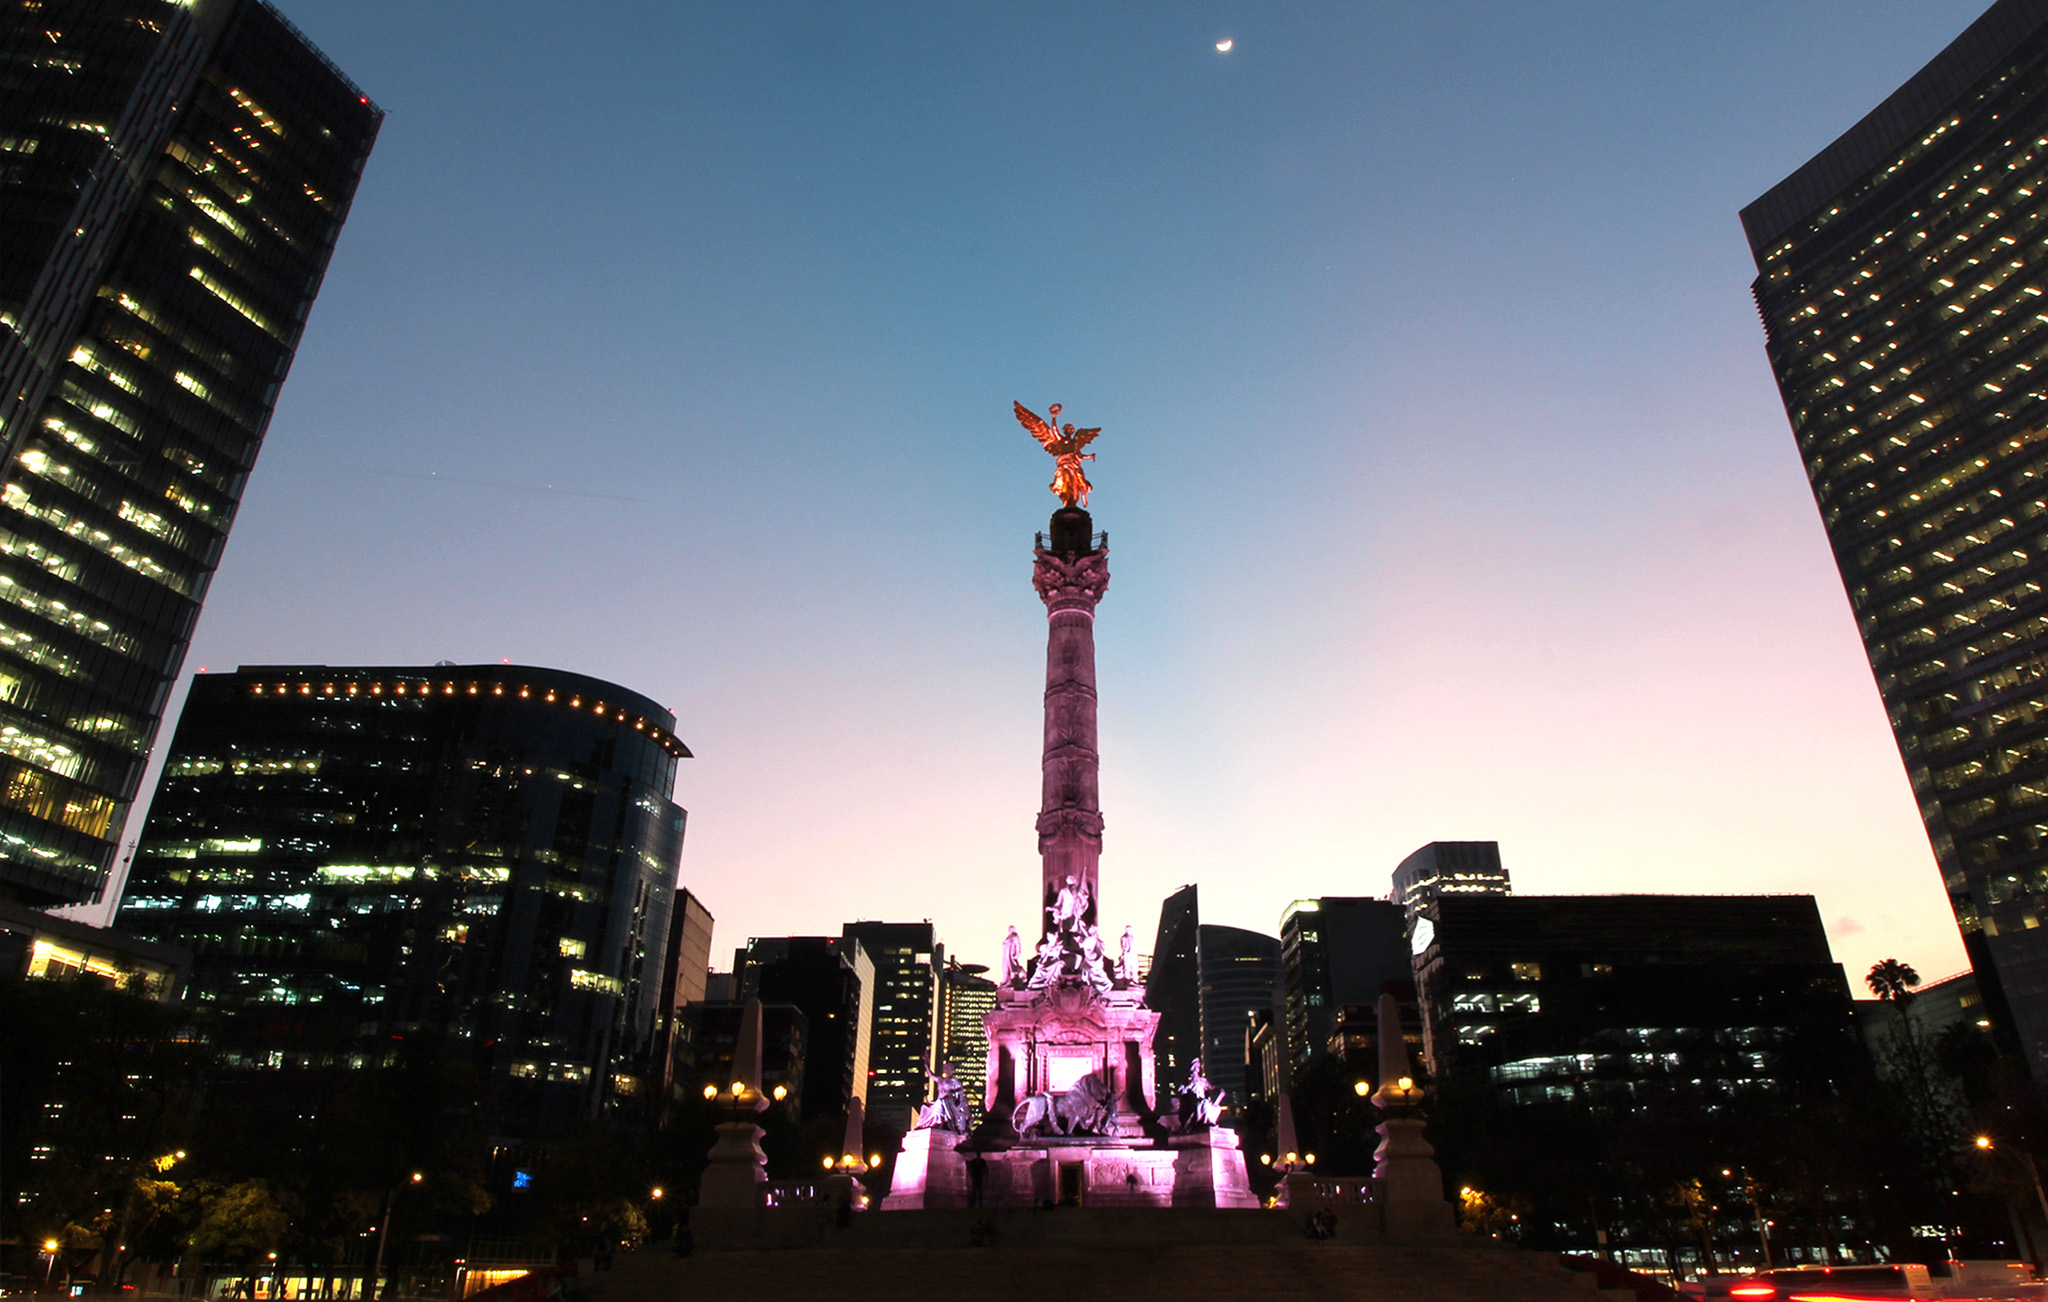 /cms/uploads/image/file/374957/Angel-CDMX.jpg